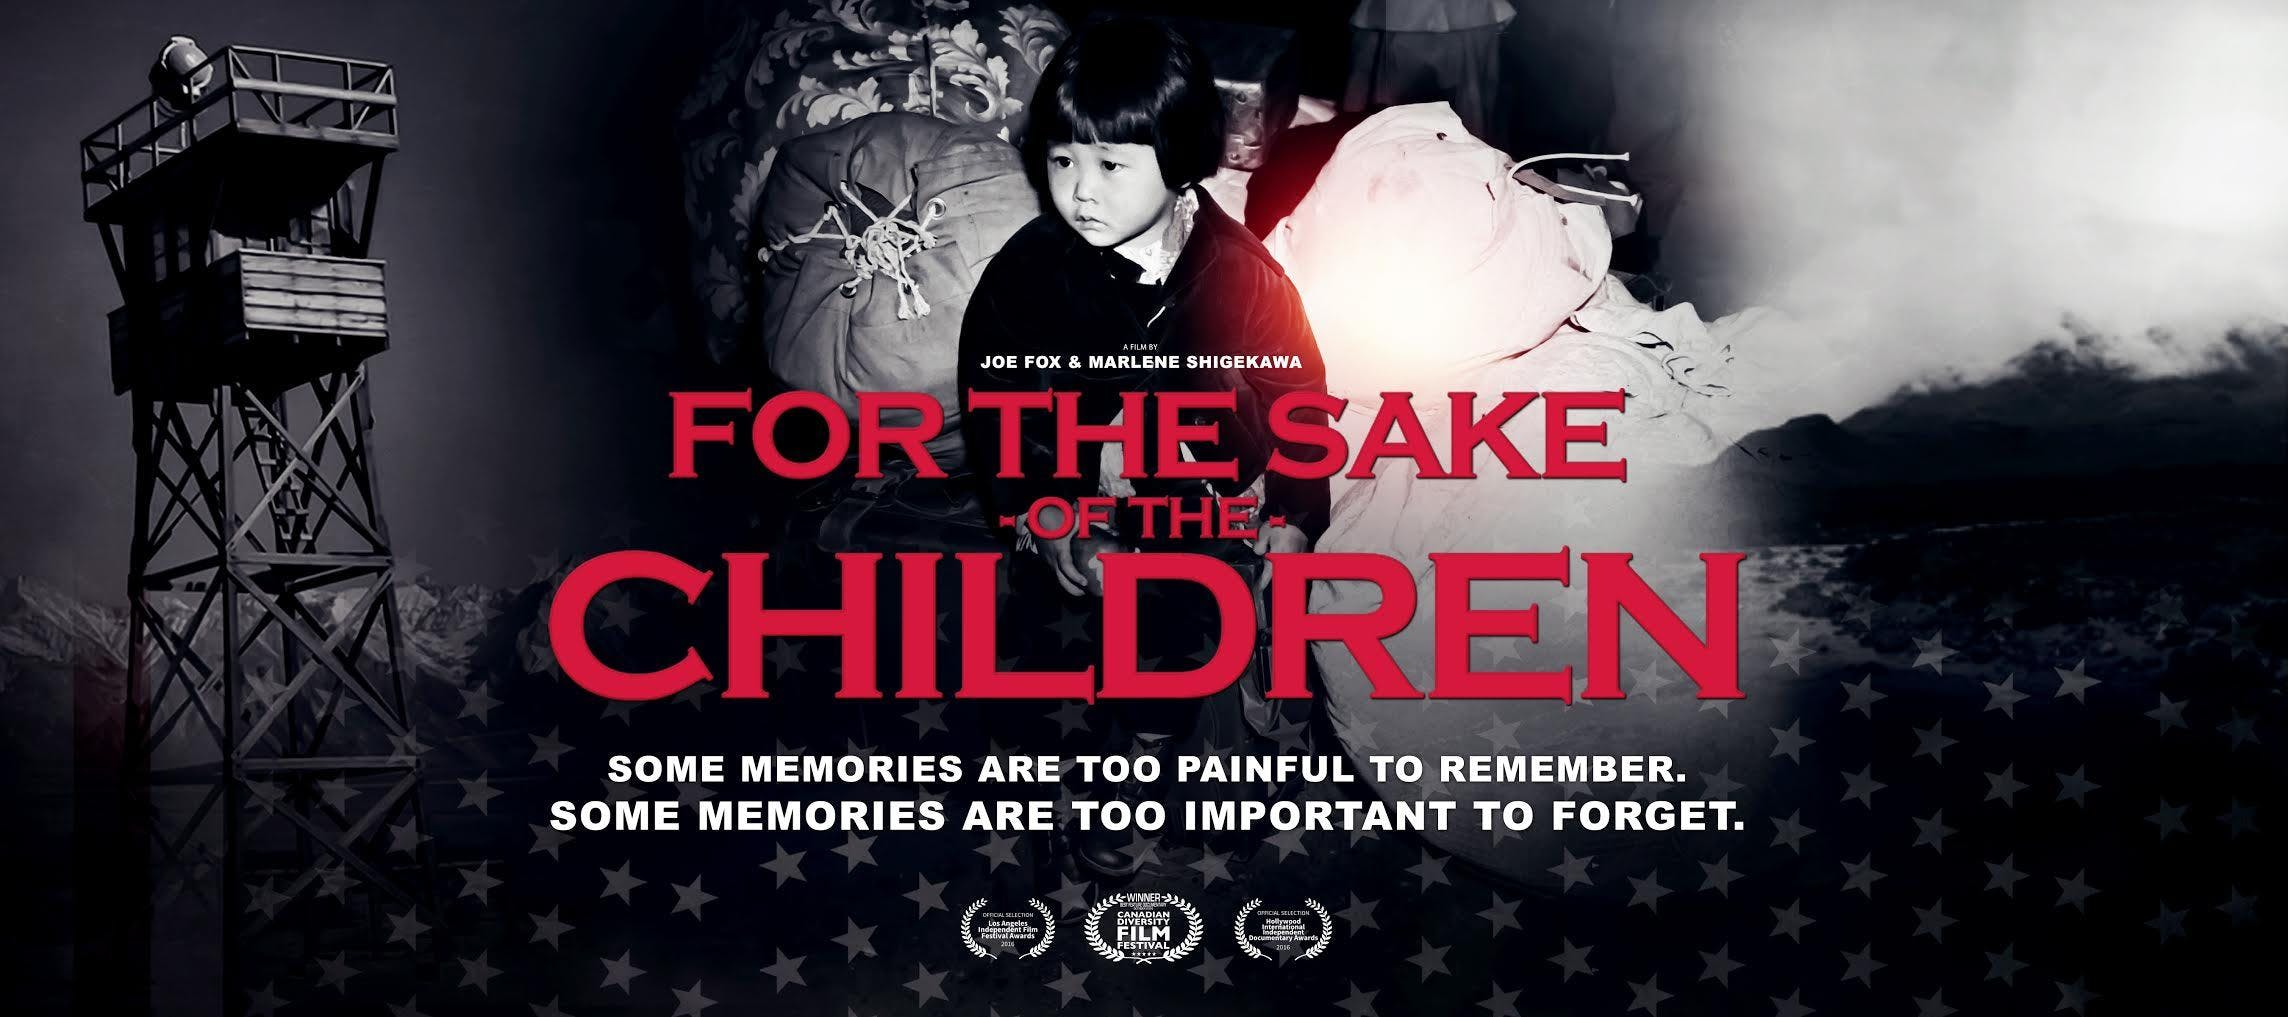 For the Sake of the Children Film Screening & Discussion